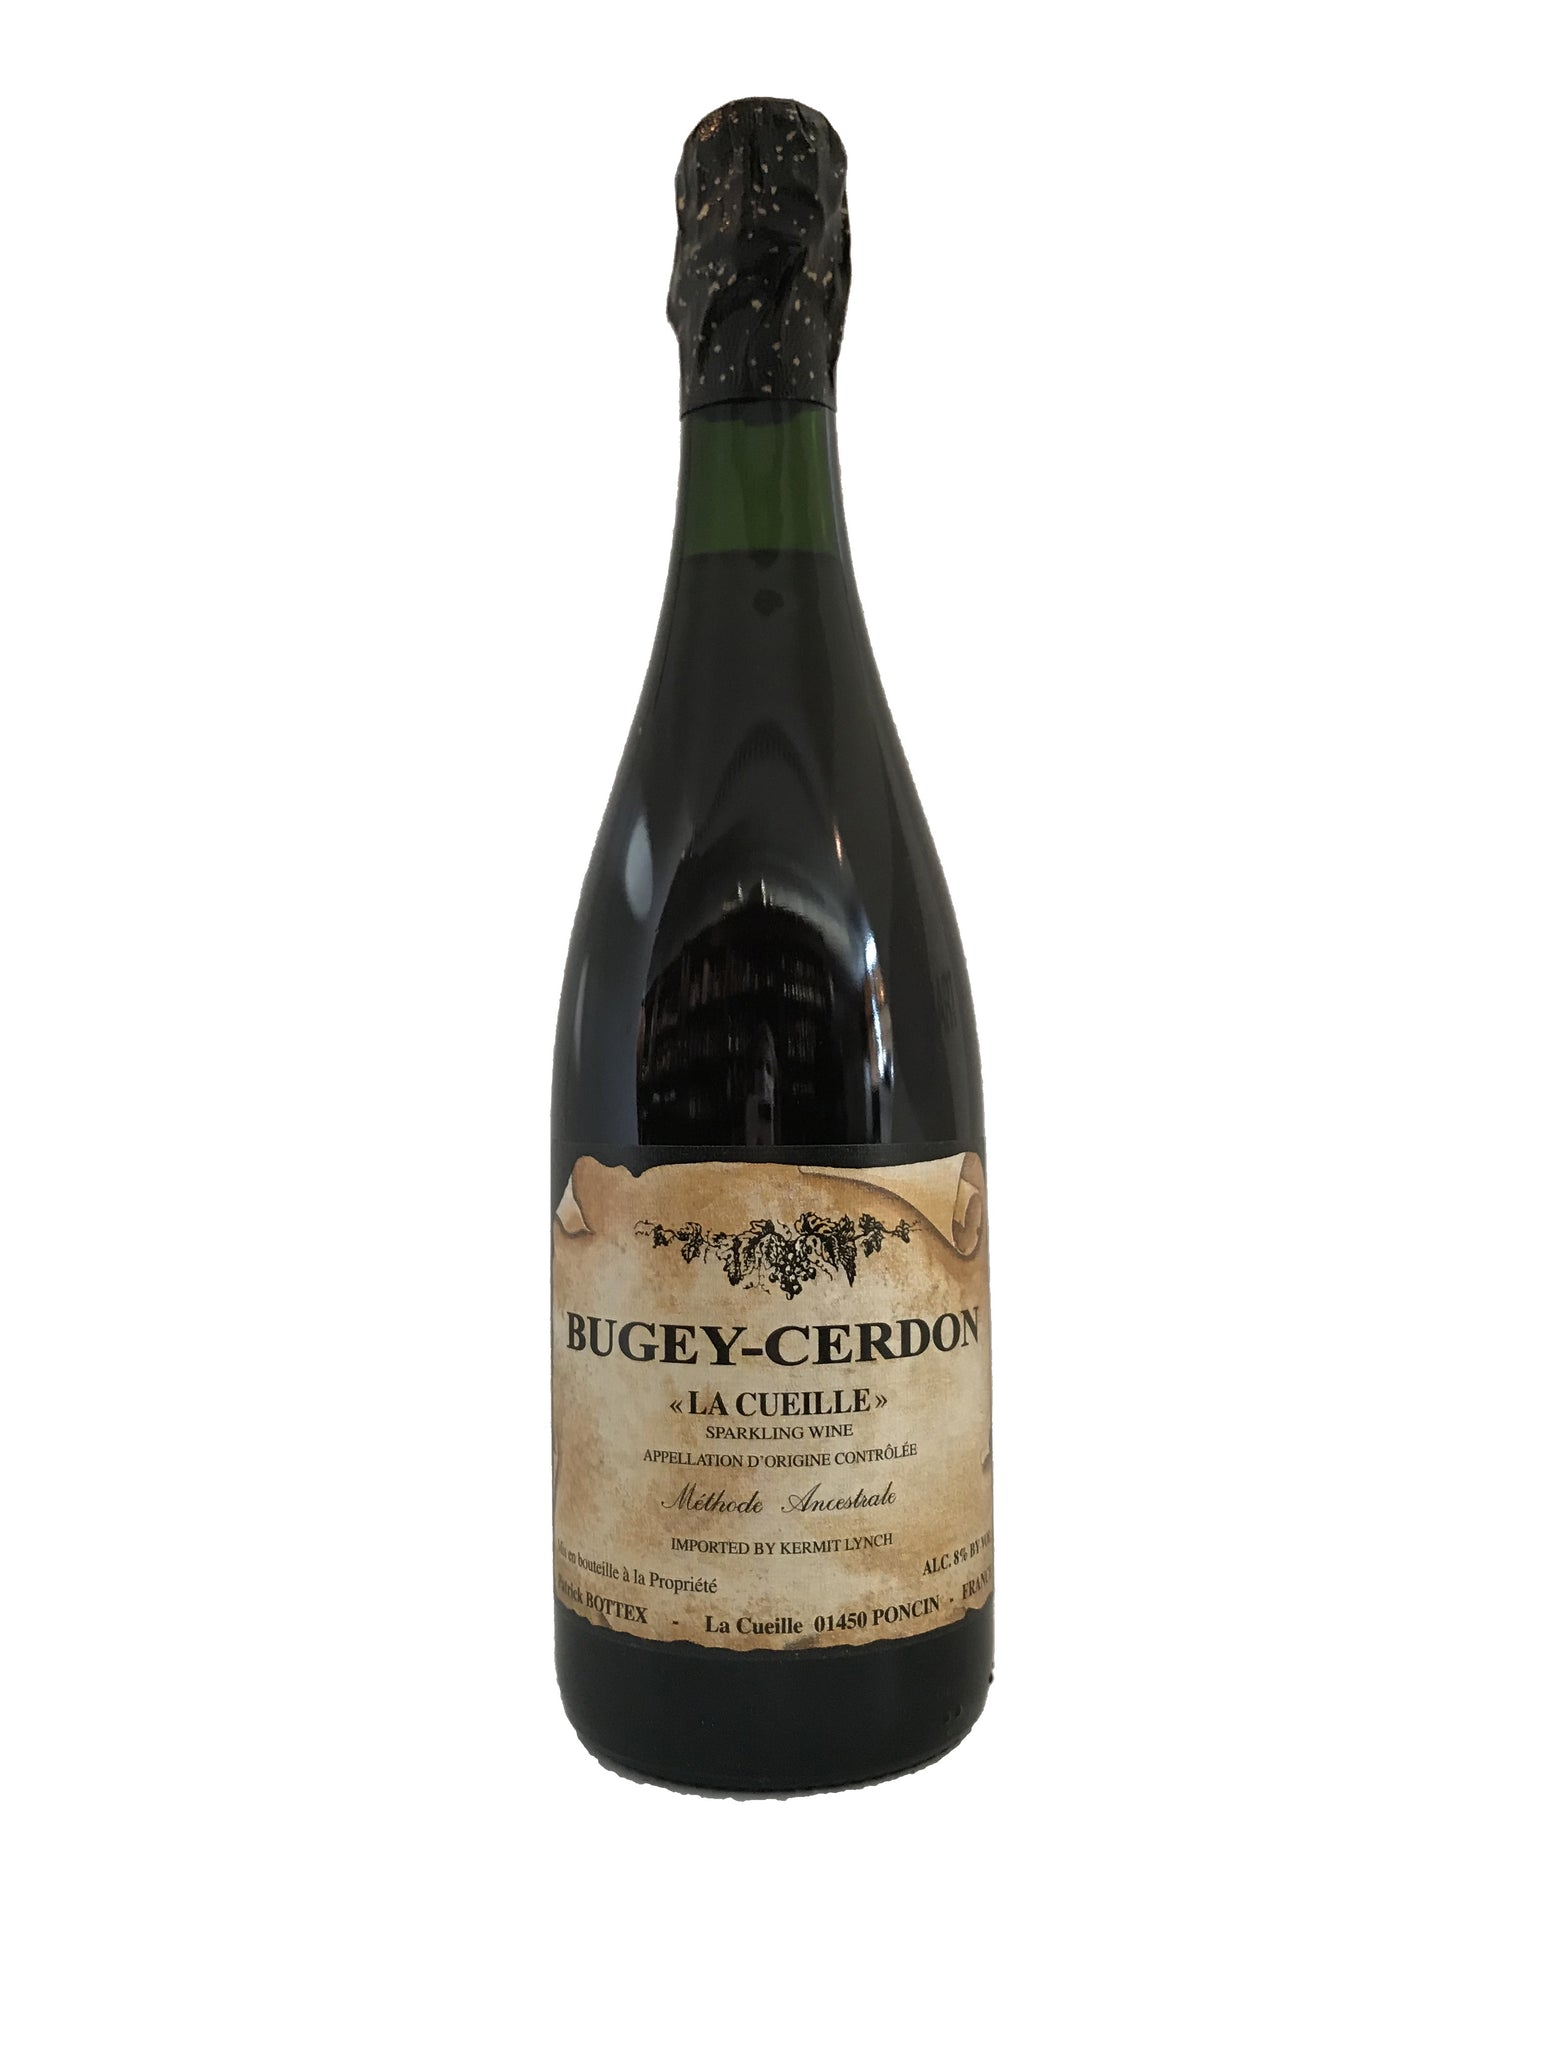 Bottex Bugey-Cerdon La Cueille NV